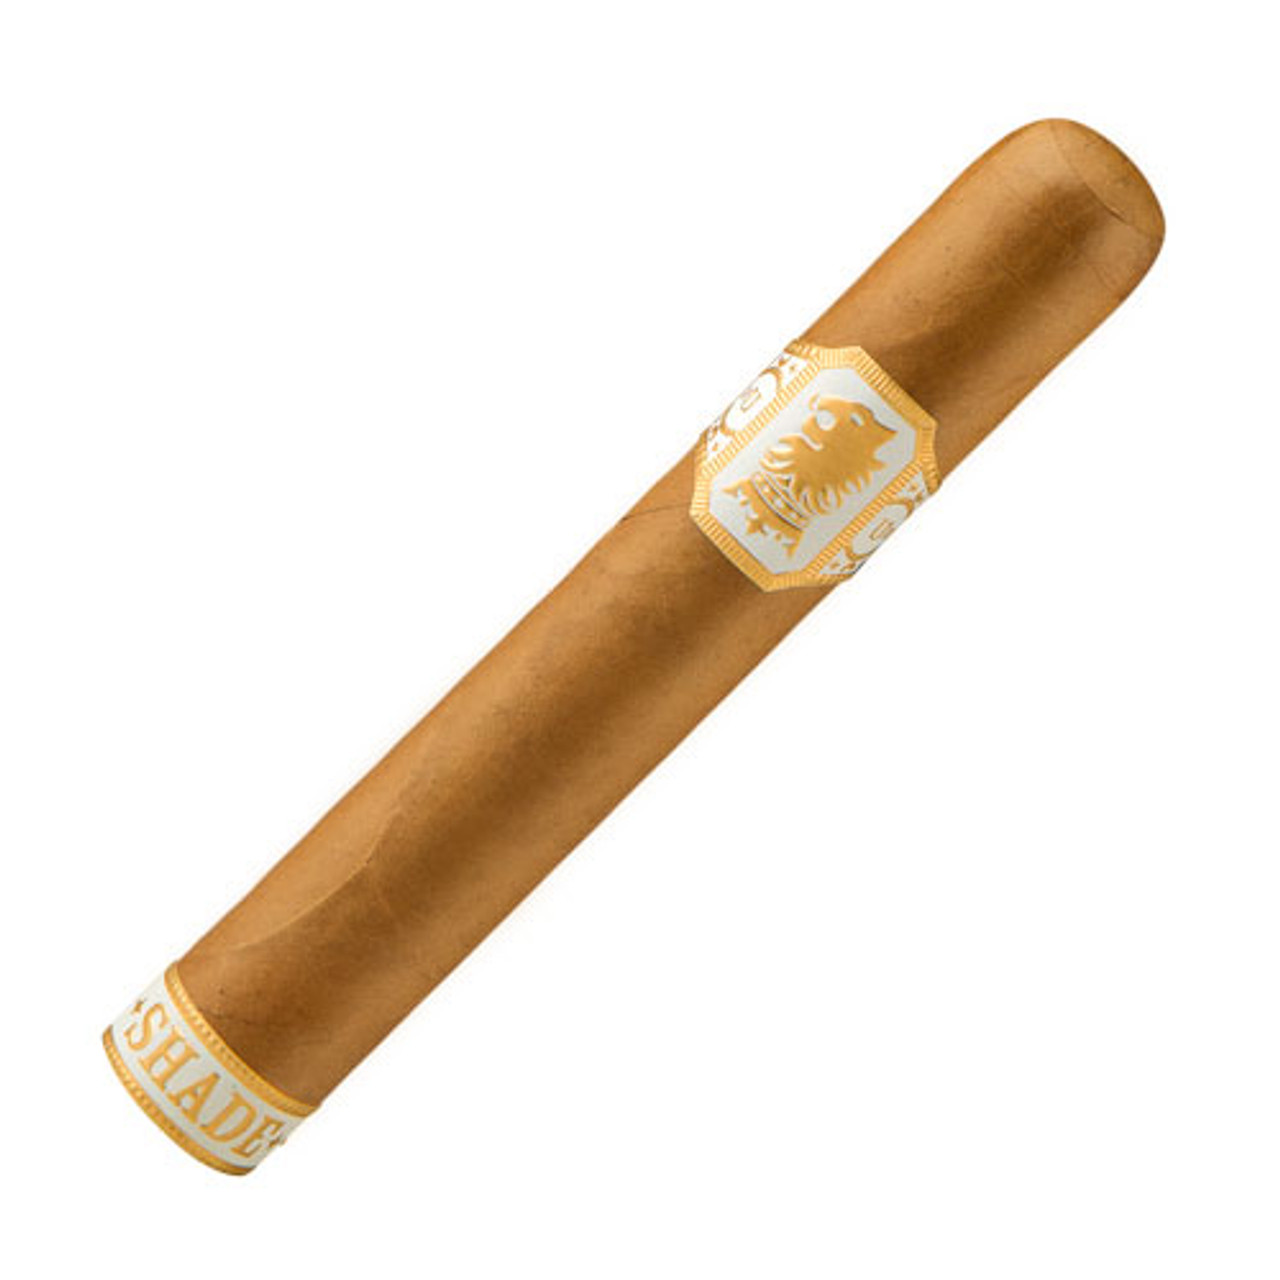 Undercrown Shade Gordito Cigars - 6 x 60 (Box of 25)